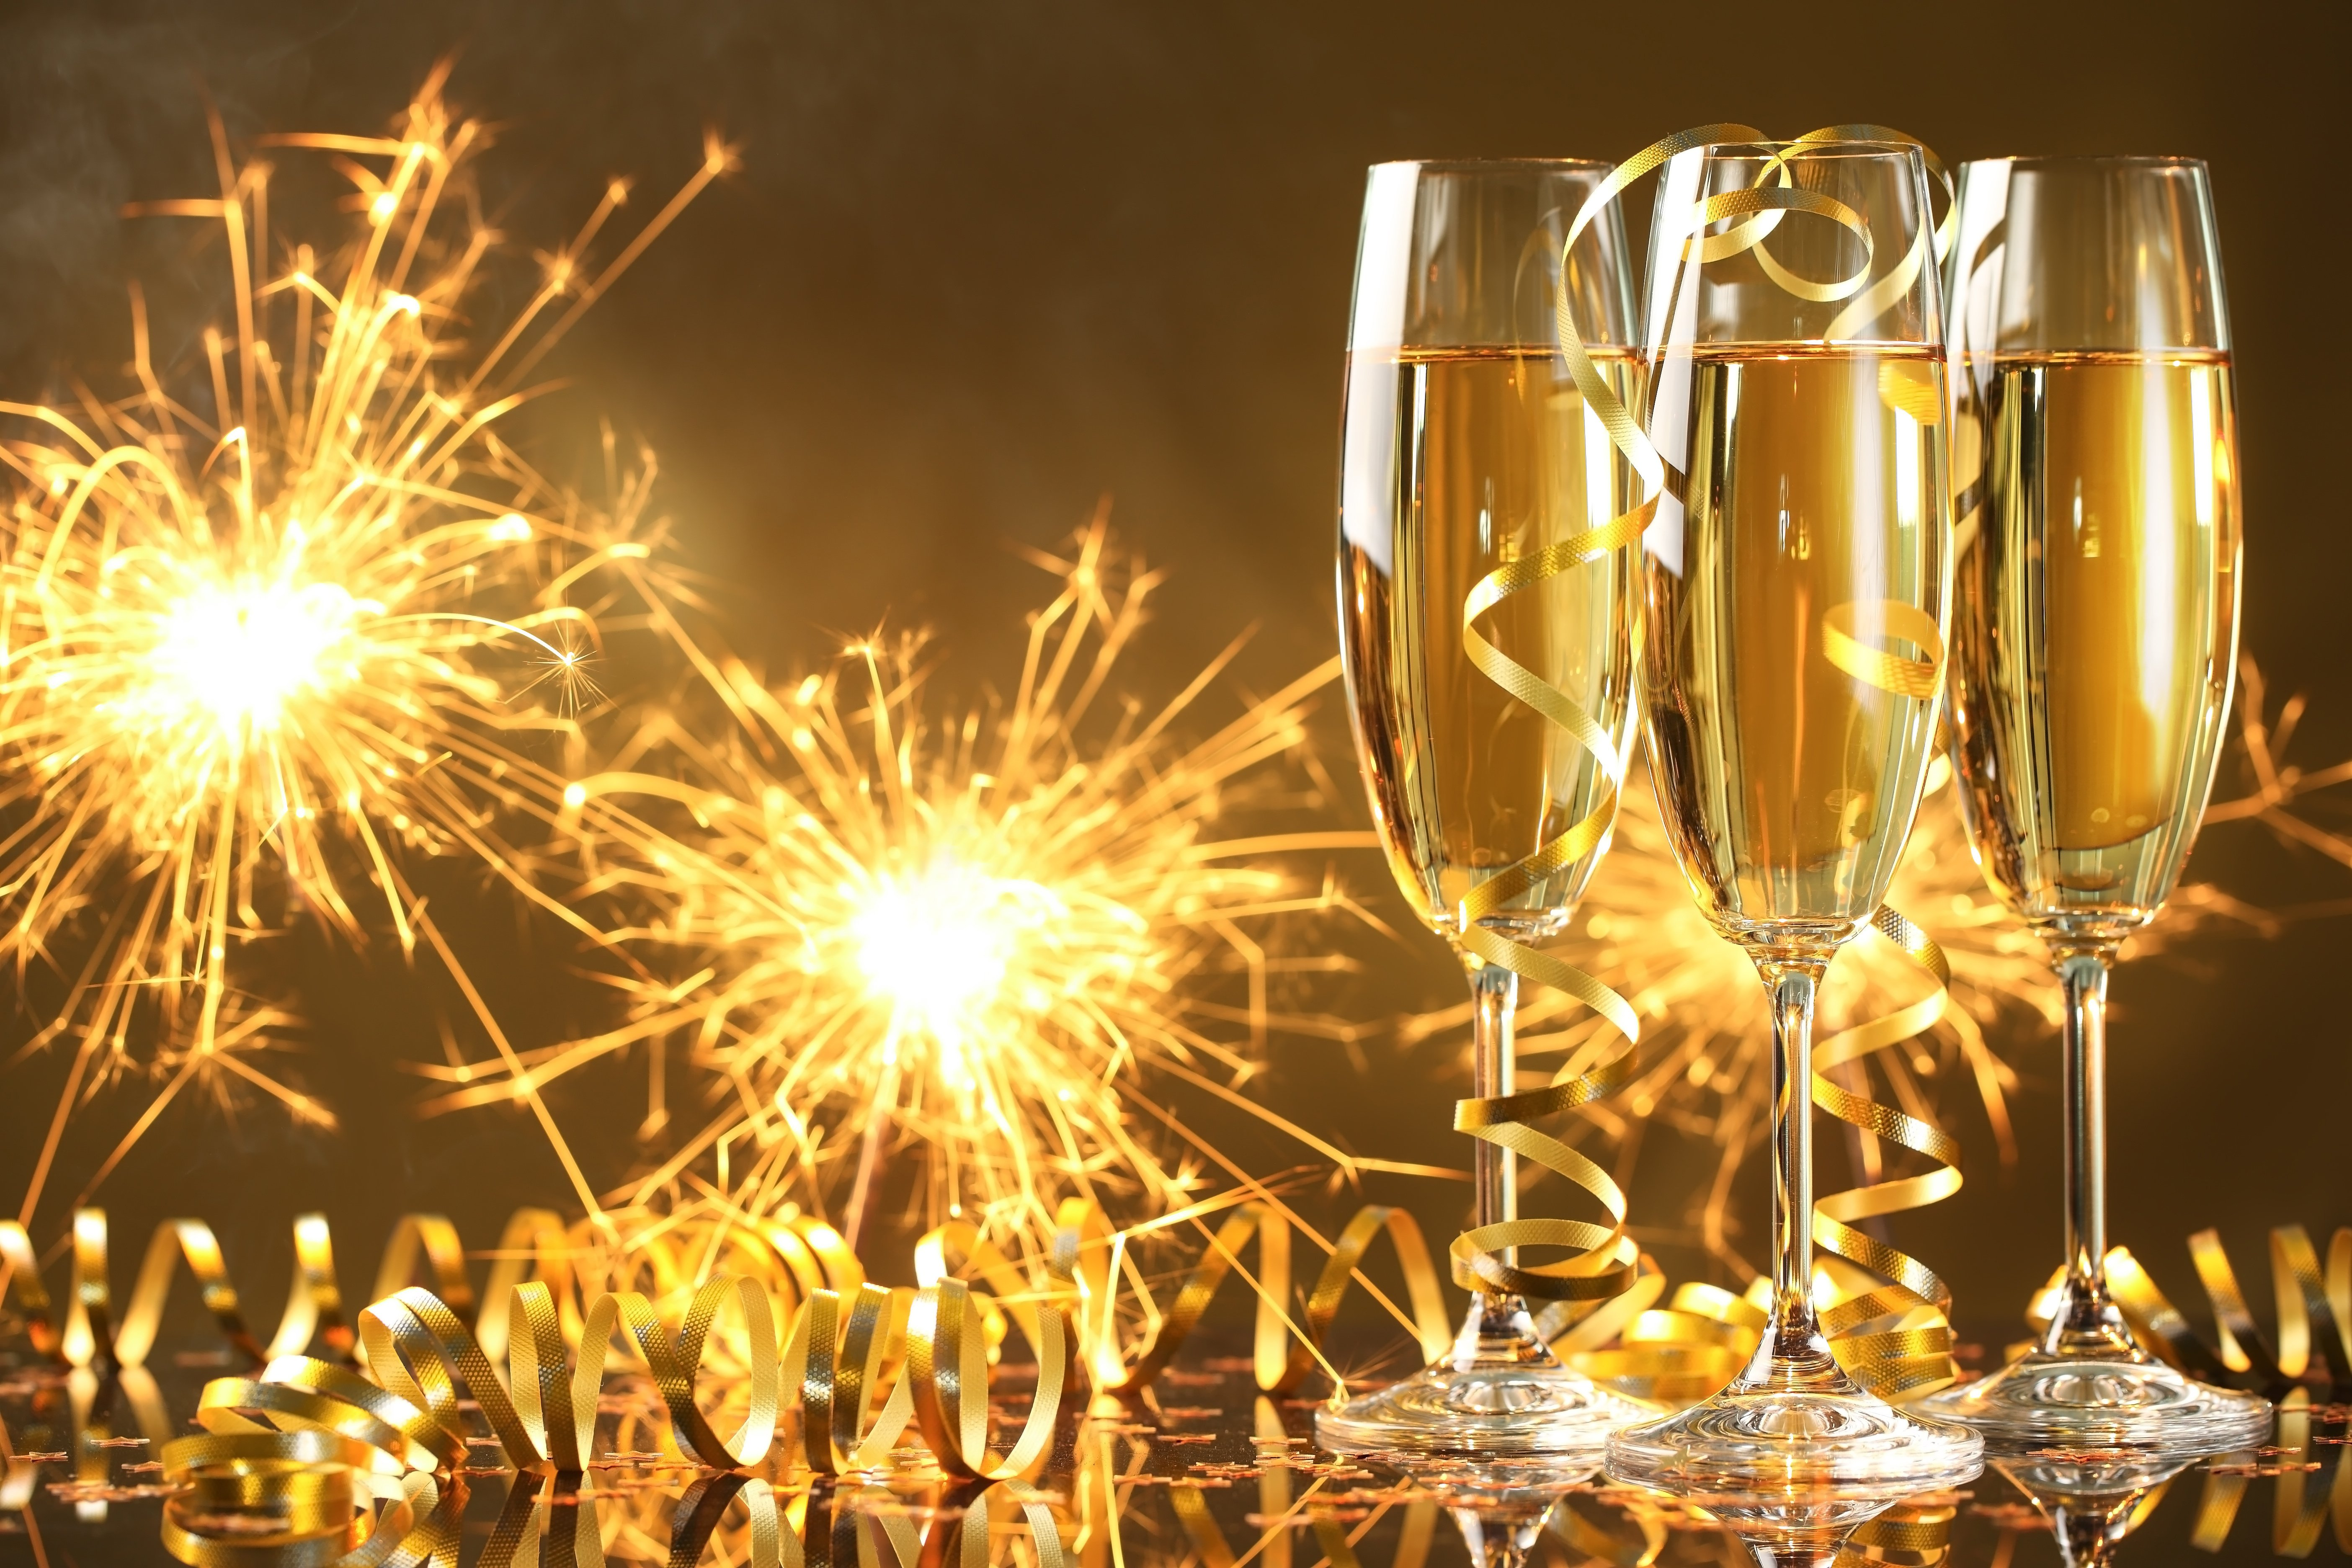 Happy New Year champagne golden celebration holiday New 5616x3744